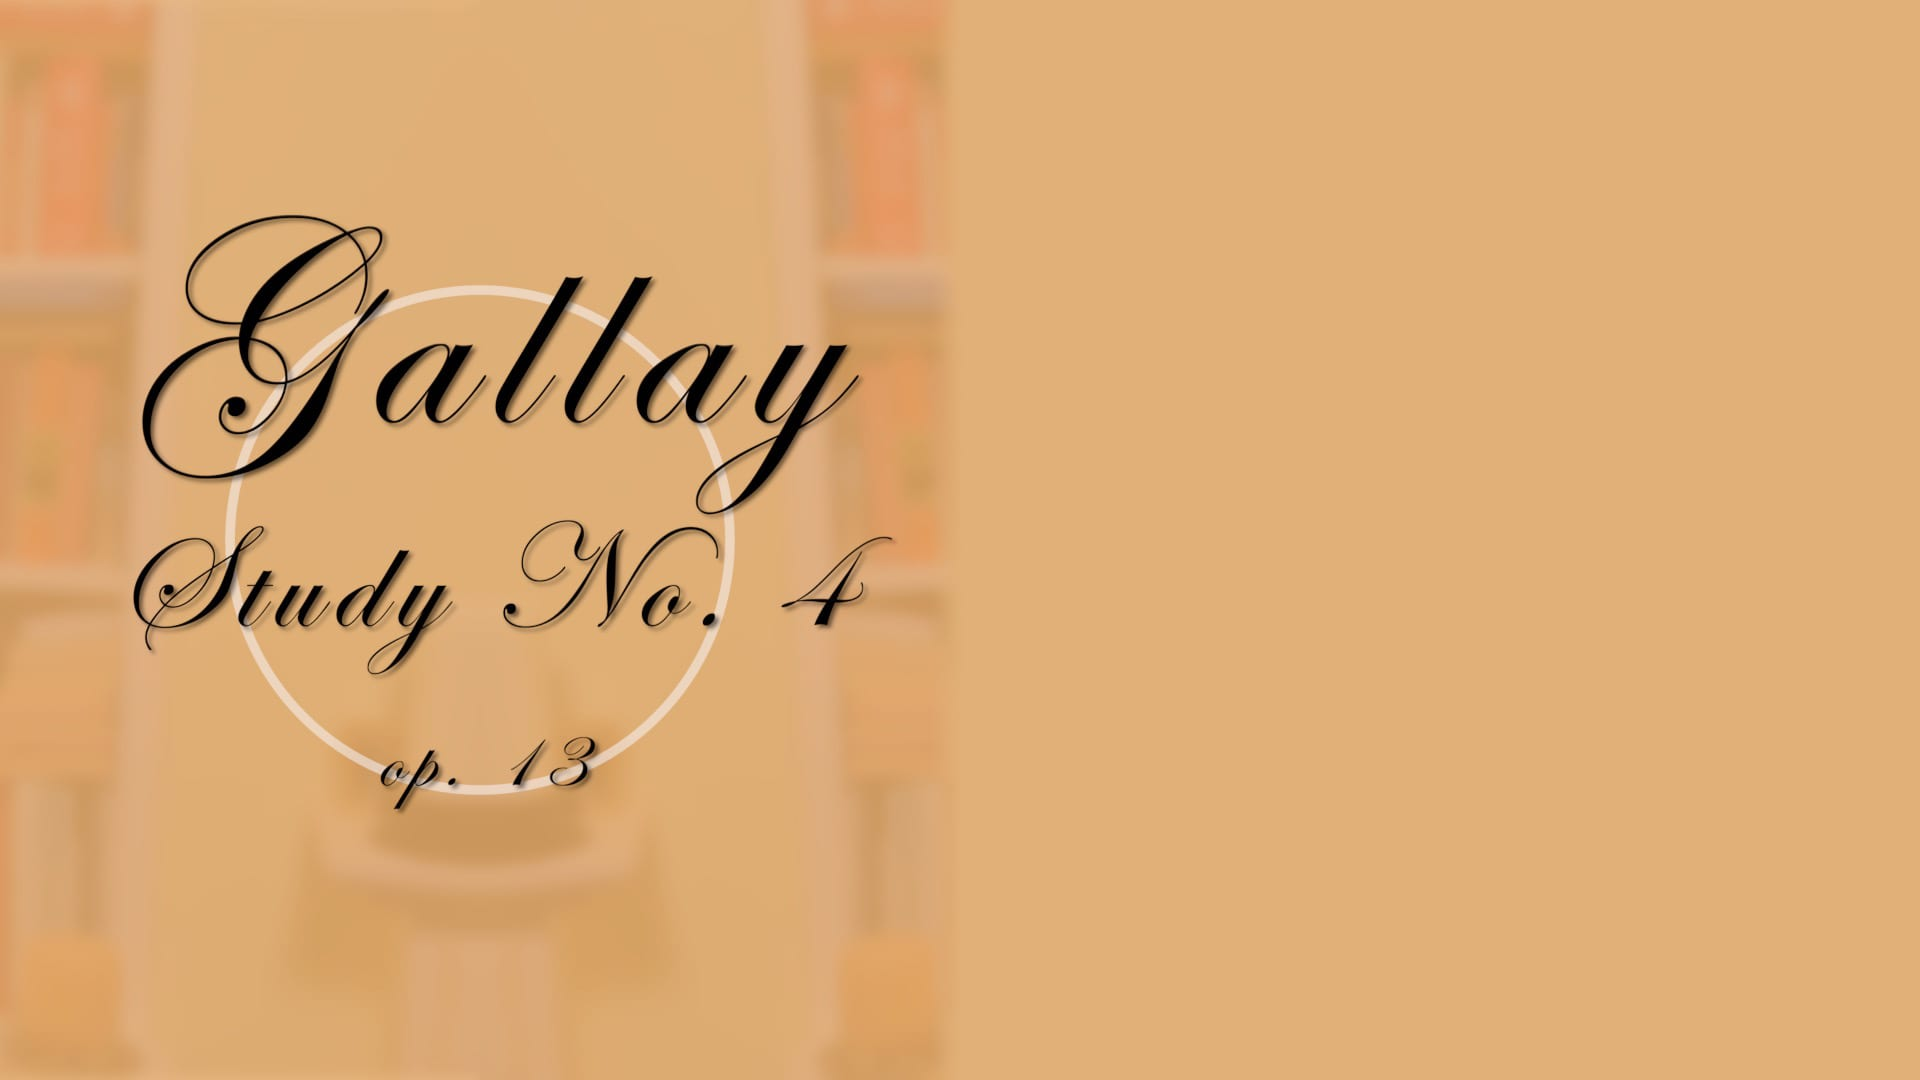 Gallay Study No. 4 trailer